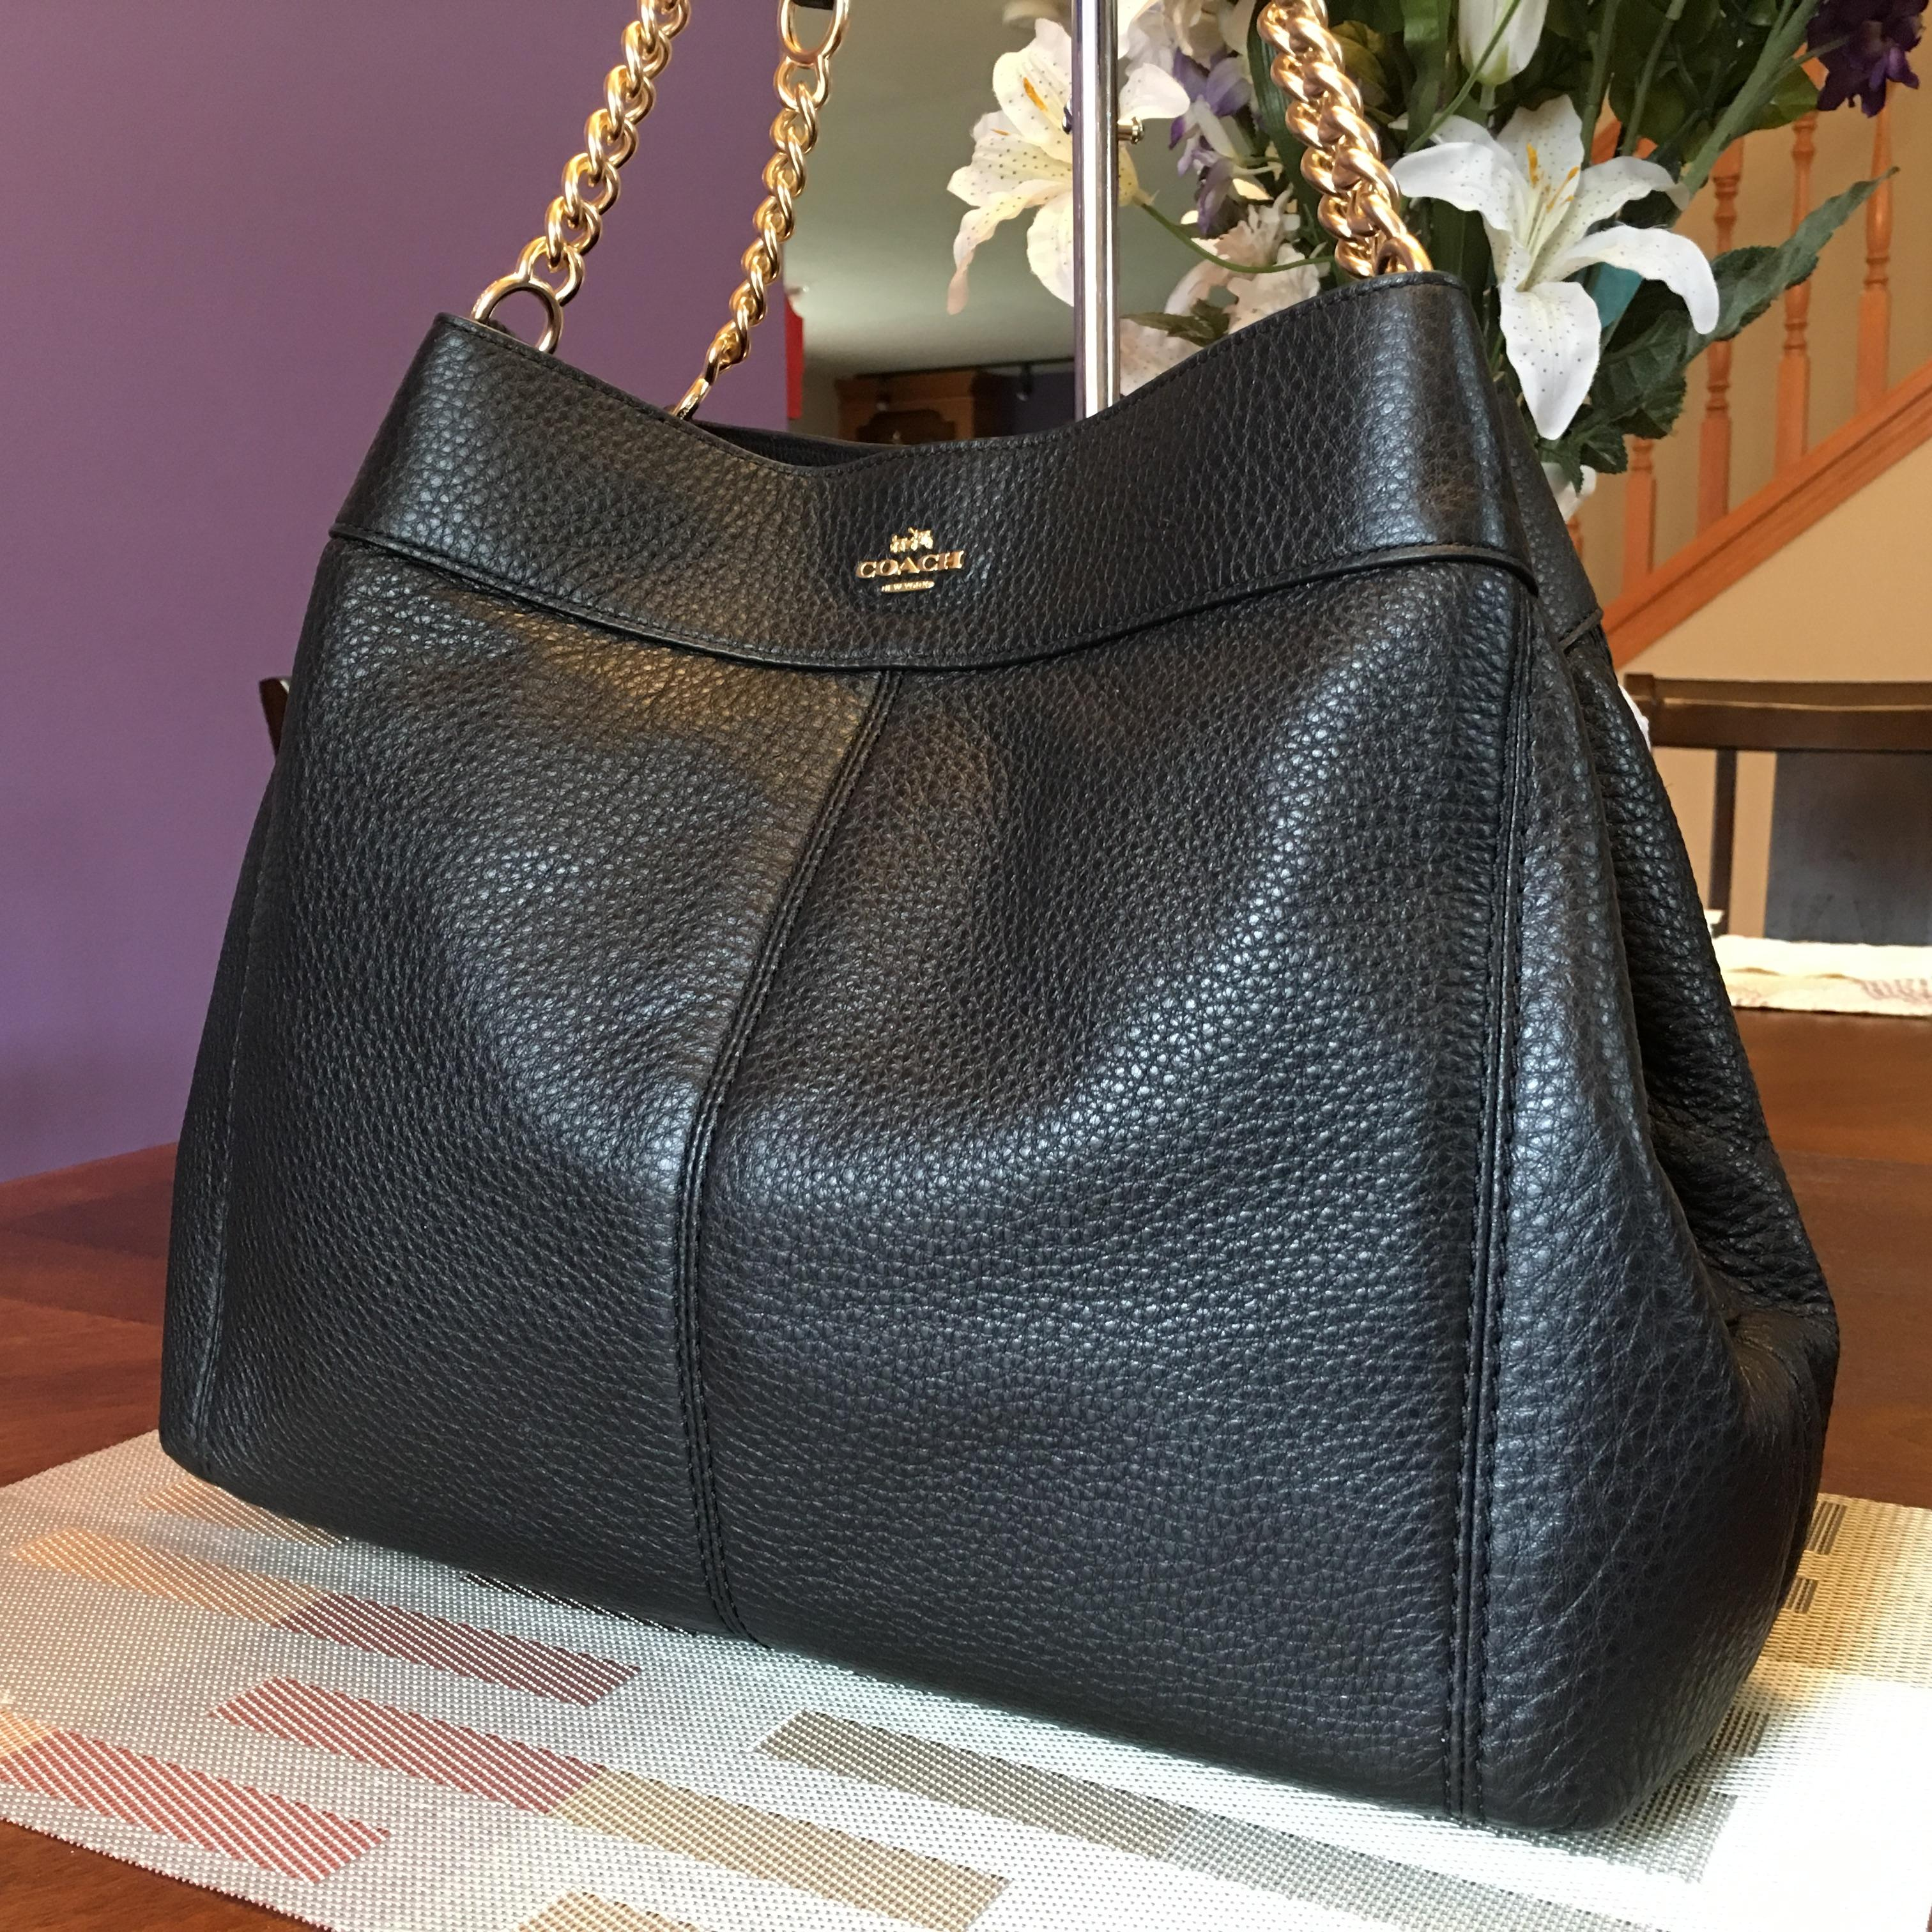 8c4dc118d2b2a new zealand womens coach bags chain f9592 473bf  canada coach lexy new  f27594 black pebble leather chain shoulder bag tradesy 9863f e9957